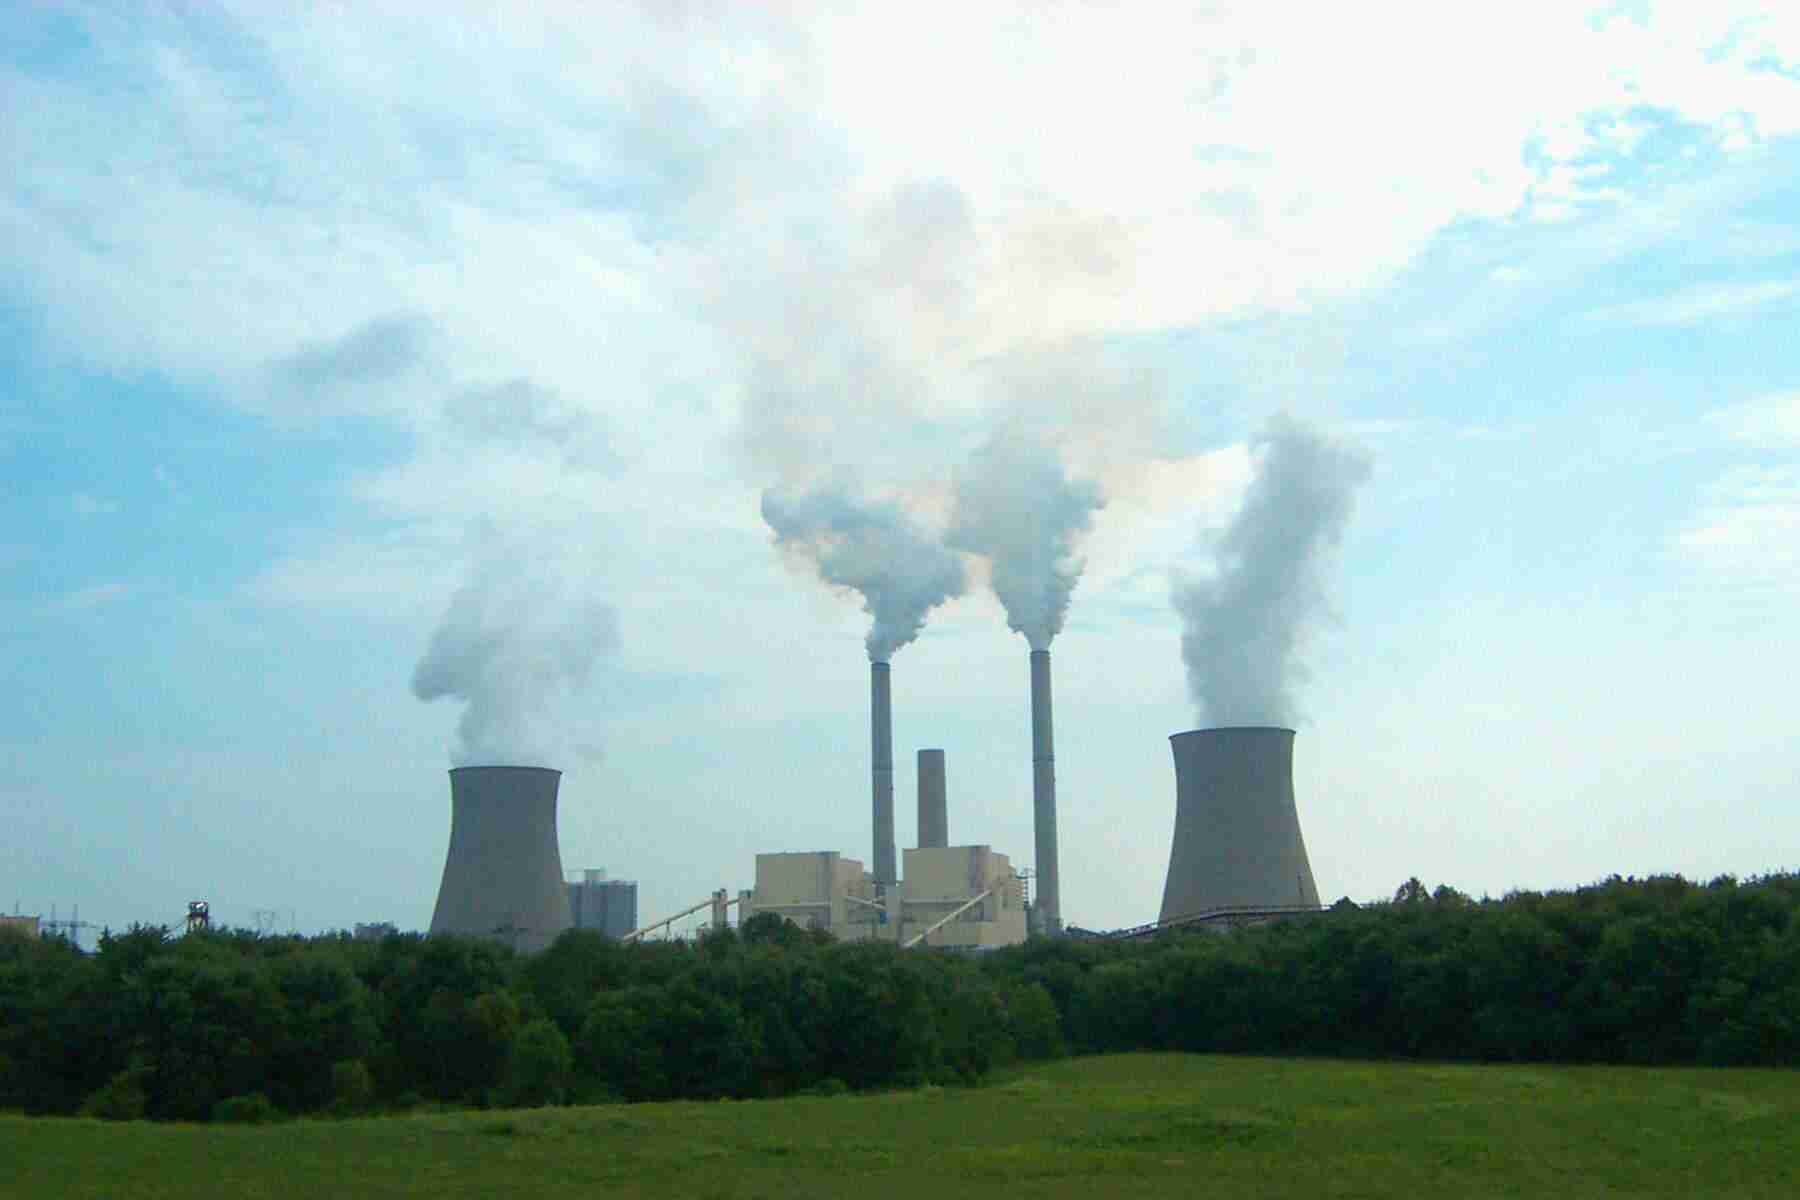 AEP's coal-fired power plant in Cheshire, Ohio releases up to 32 tons per day of sulfuric acid mist, a toxic pollutant.